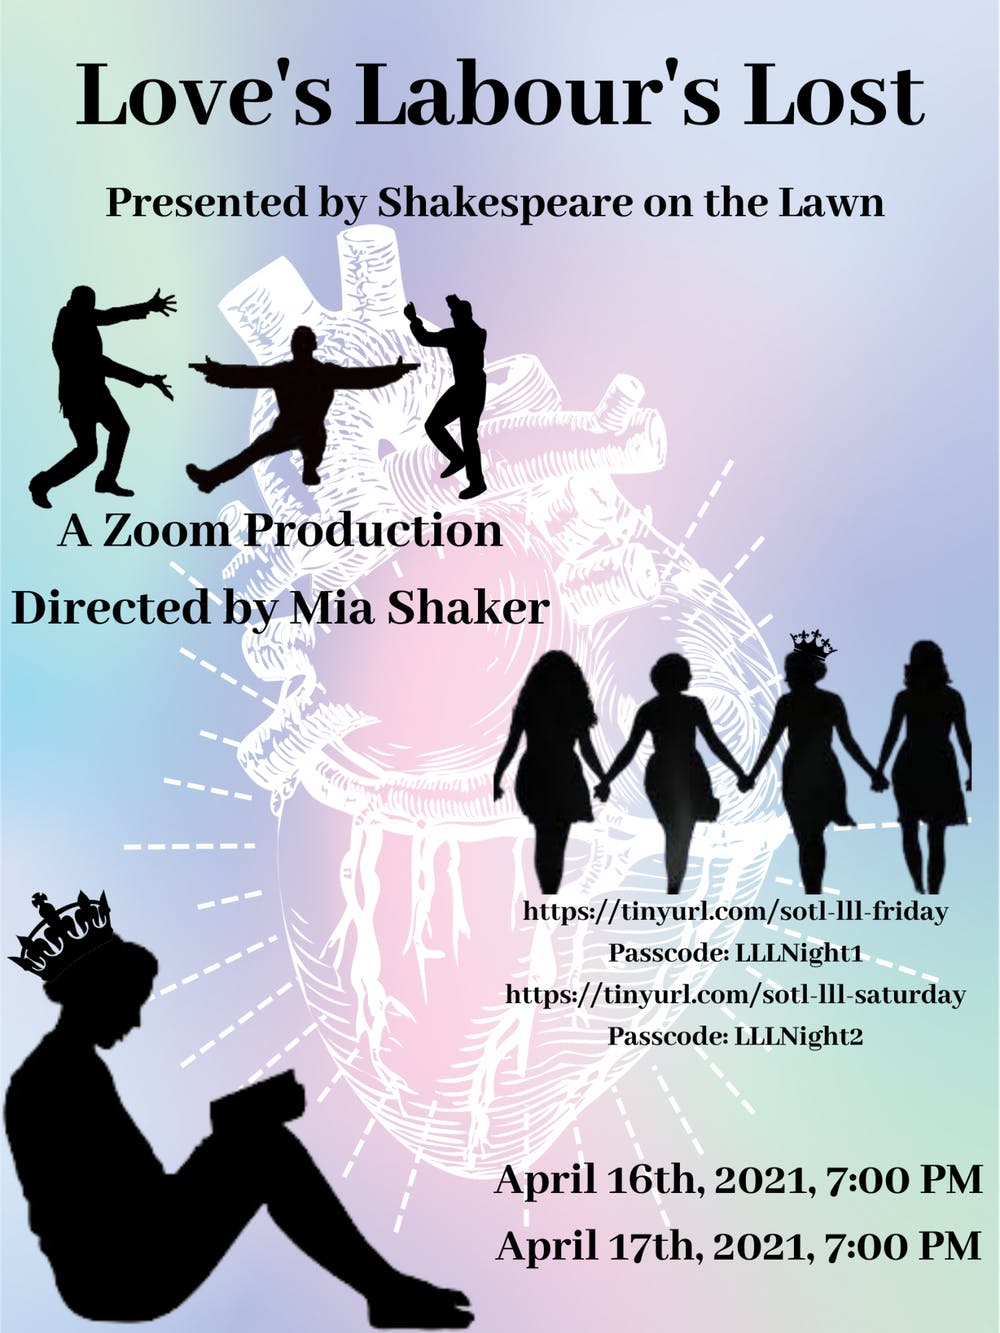 """<p>Shakespeare on the Lawn's production of """"Love's Labour's Lost"""" will be presented virtually via Zoom April <a href=""""https://www.facebook.com/events/178523127435447/""""><u>16</u></a> and <a href=""""https://www.facebook.com/events/1152843128498199/""""><u>17</u></a> at 7 p.m.</p>"""